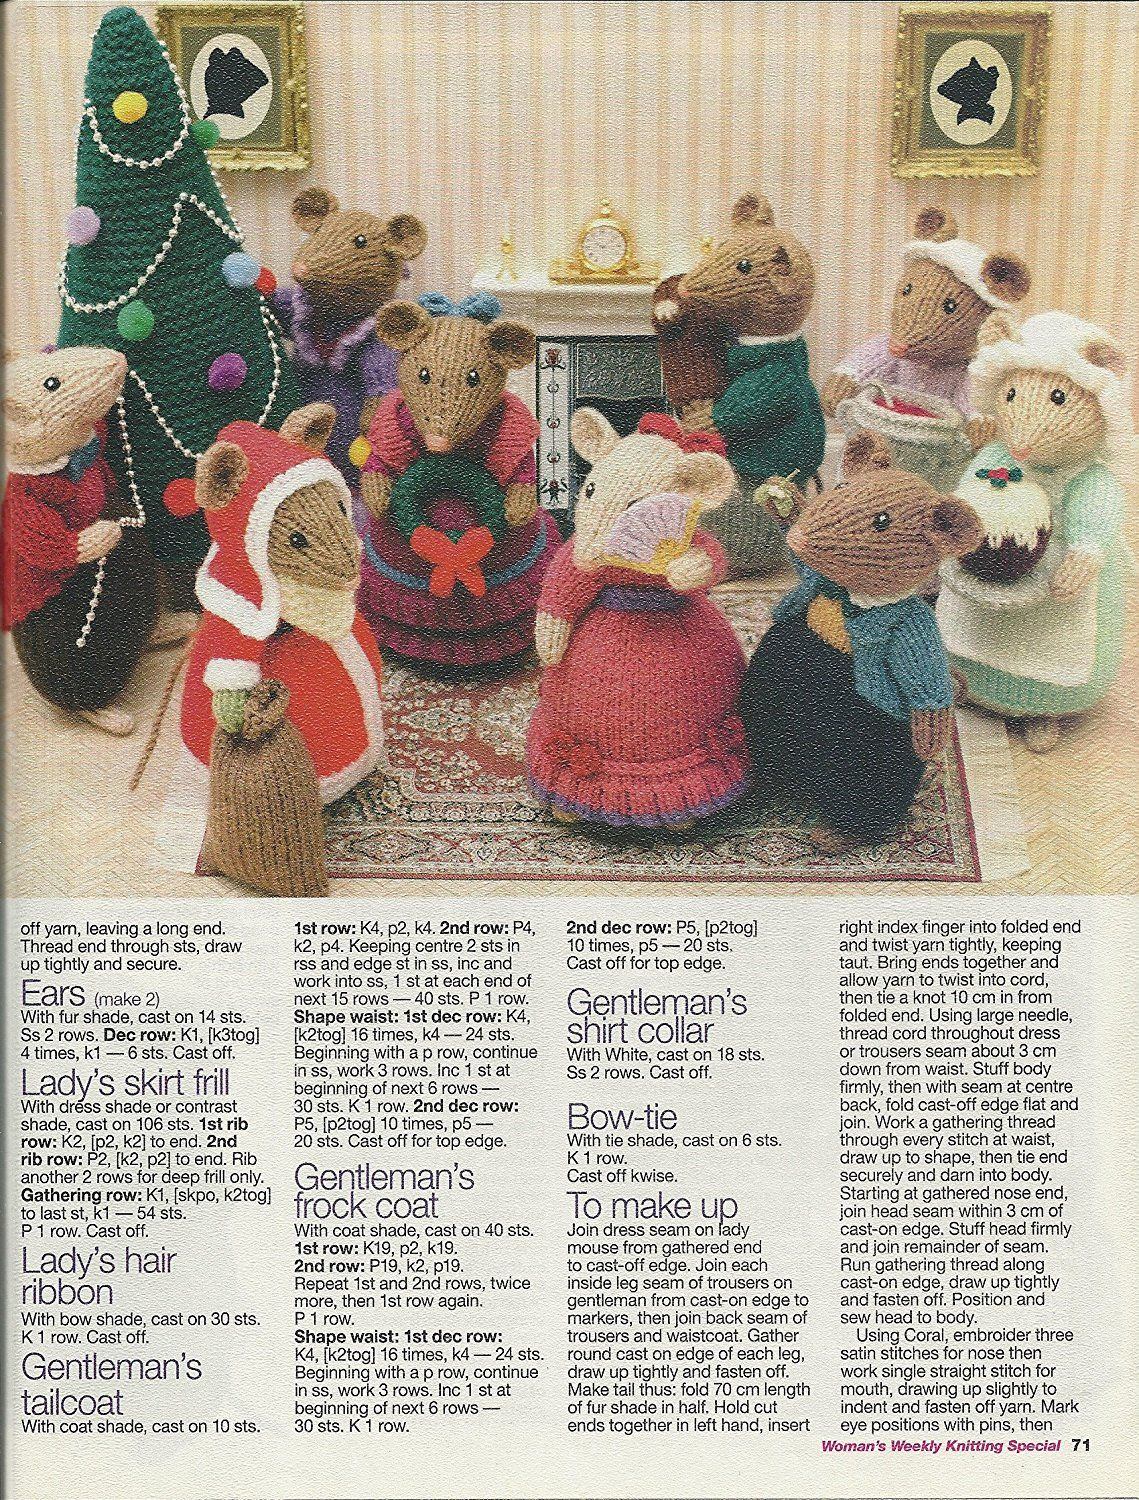 Alan dart christmas cheer (womans weekly pullout) toy knitting ...